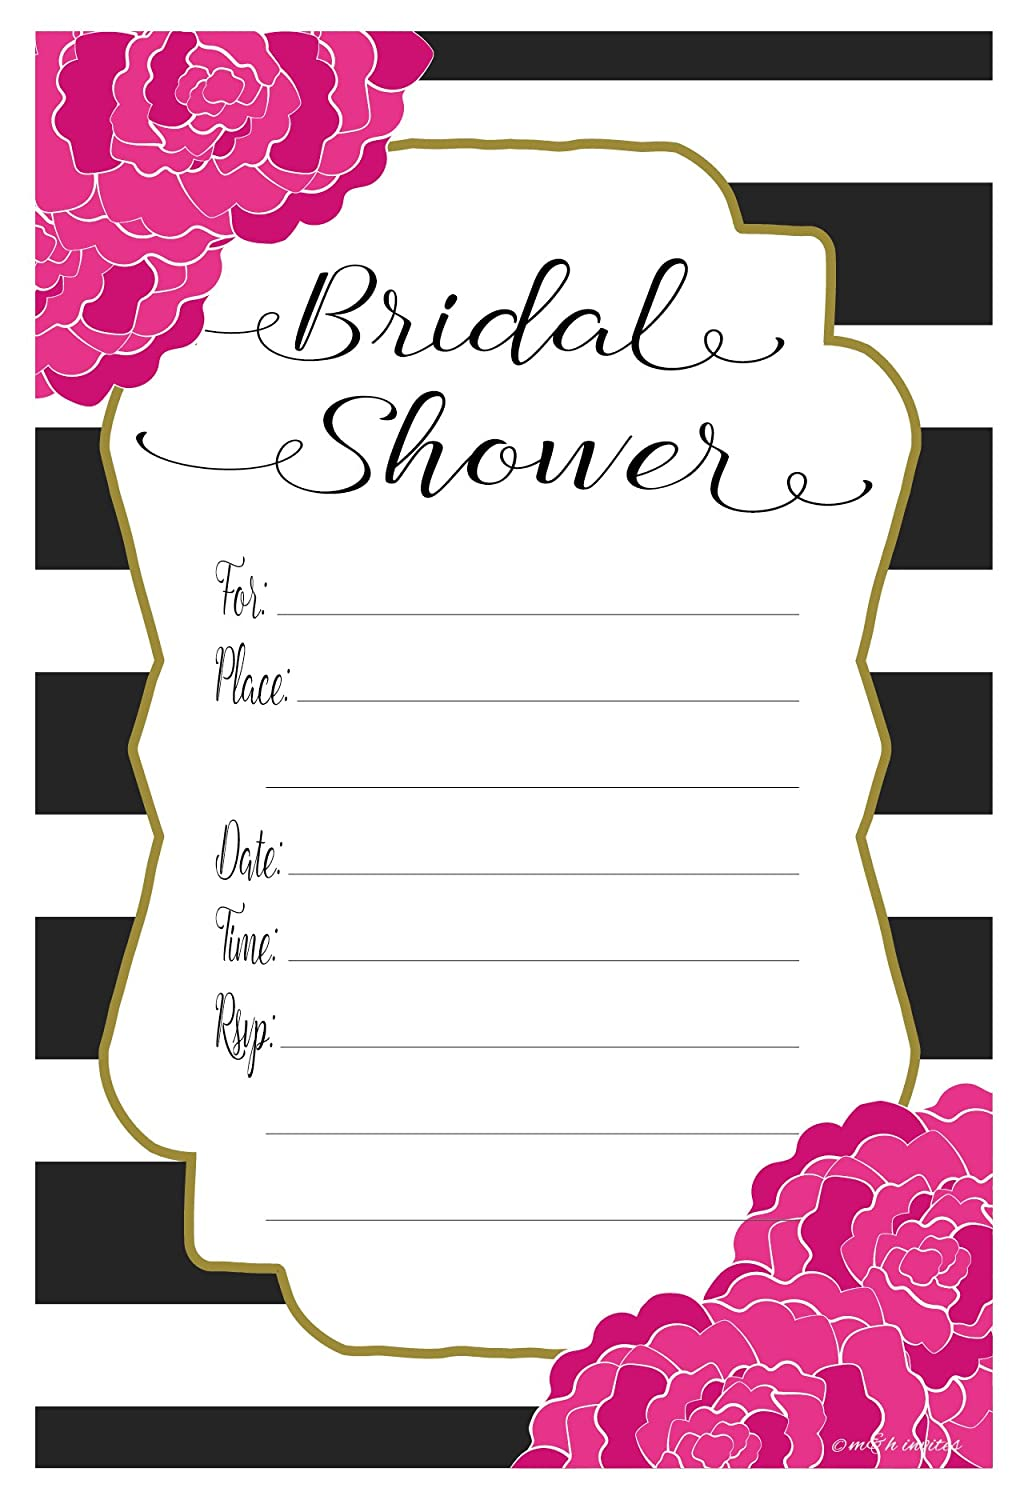 Amazon pink floral bridal shower invitations fill in style amazon pink floral bridal shower invitations fill in style 20 count with envelopes kitchen dining filmwisefo